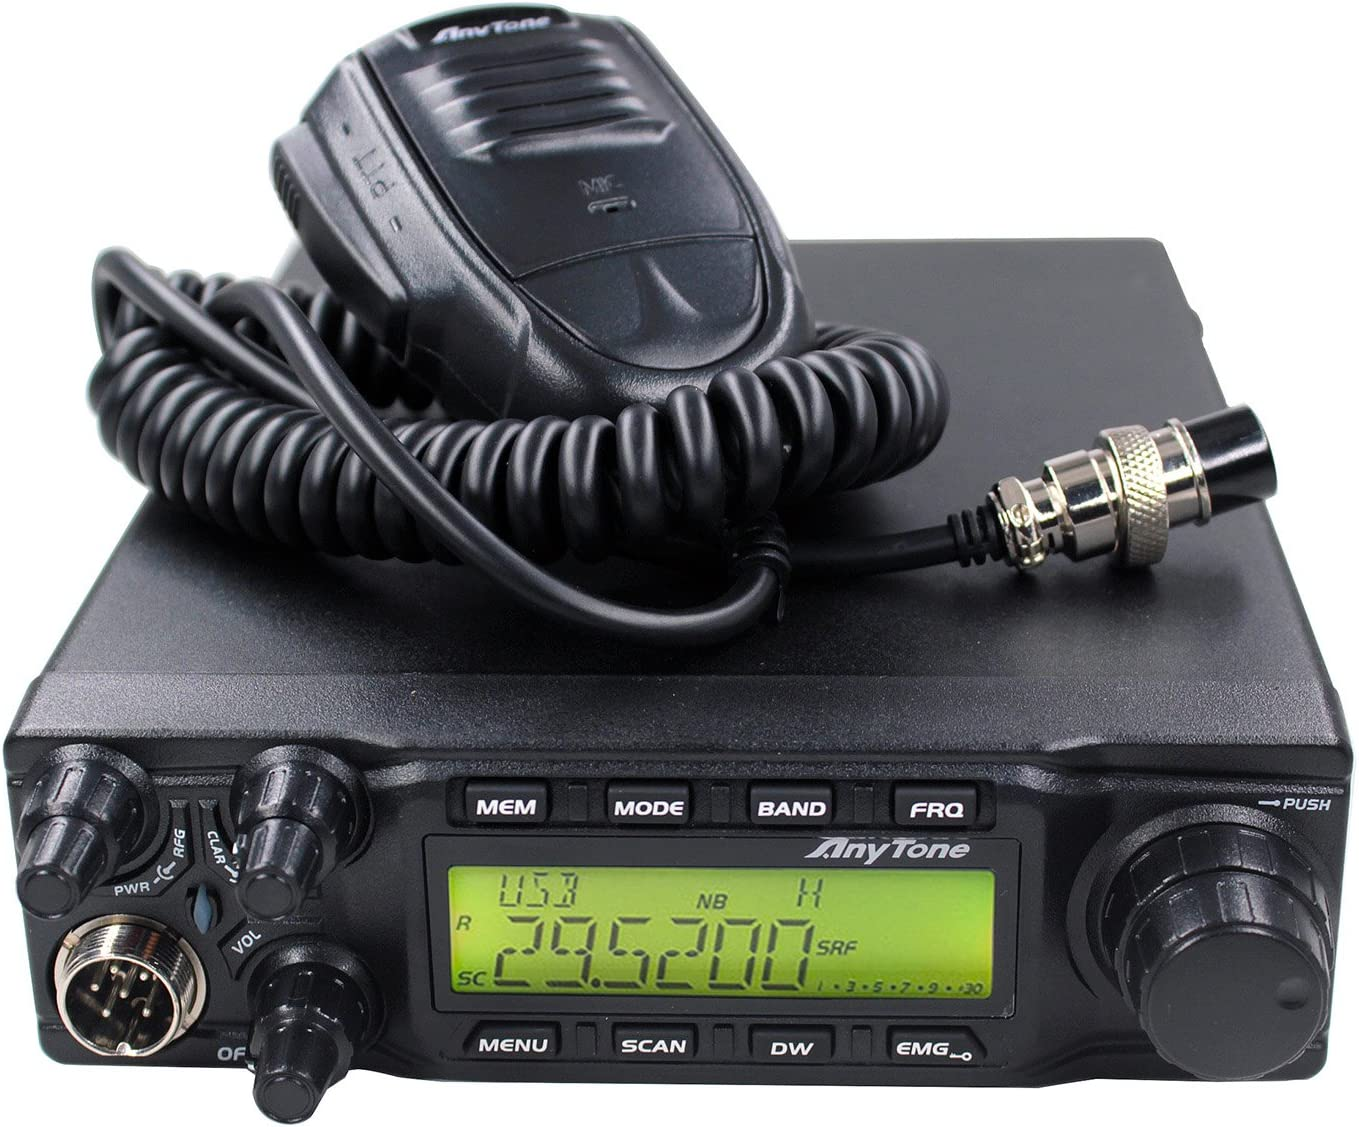 with SSB AnyTone AT-6666 10 Meter Radio can convert into 11 meter CB Radio 40 Channel for truck PEP PEP //FM// AM //PA mode,High Power Output 15W AM,45W FM,60W SSB